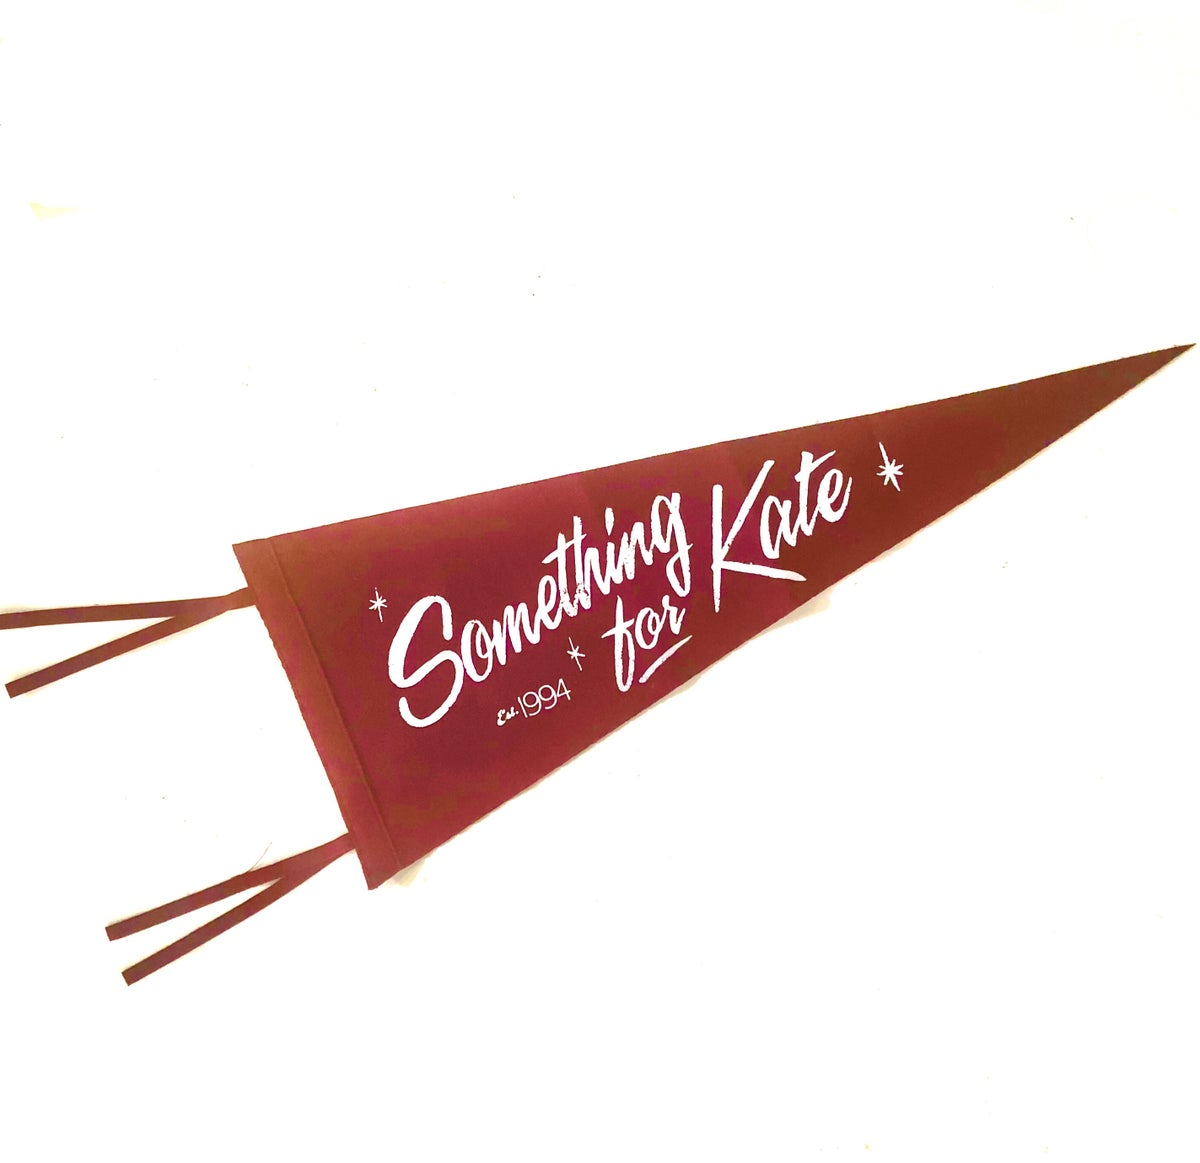 Image of SFK pennant flag - limited edition